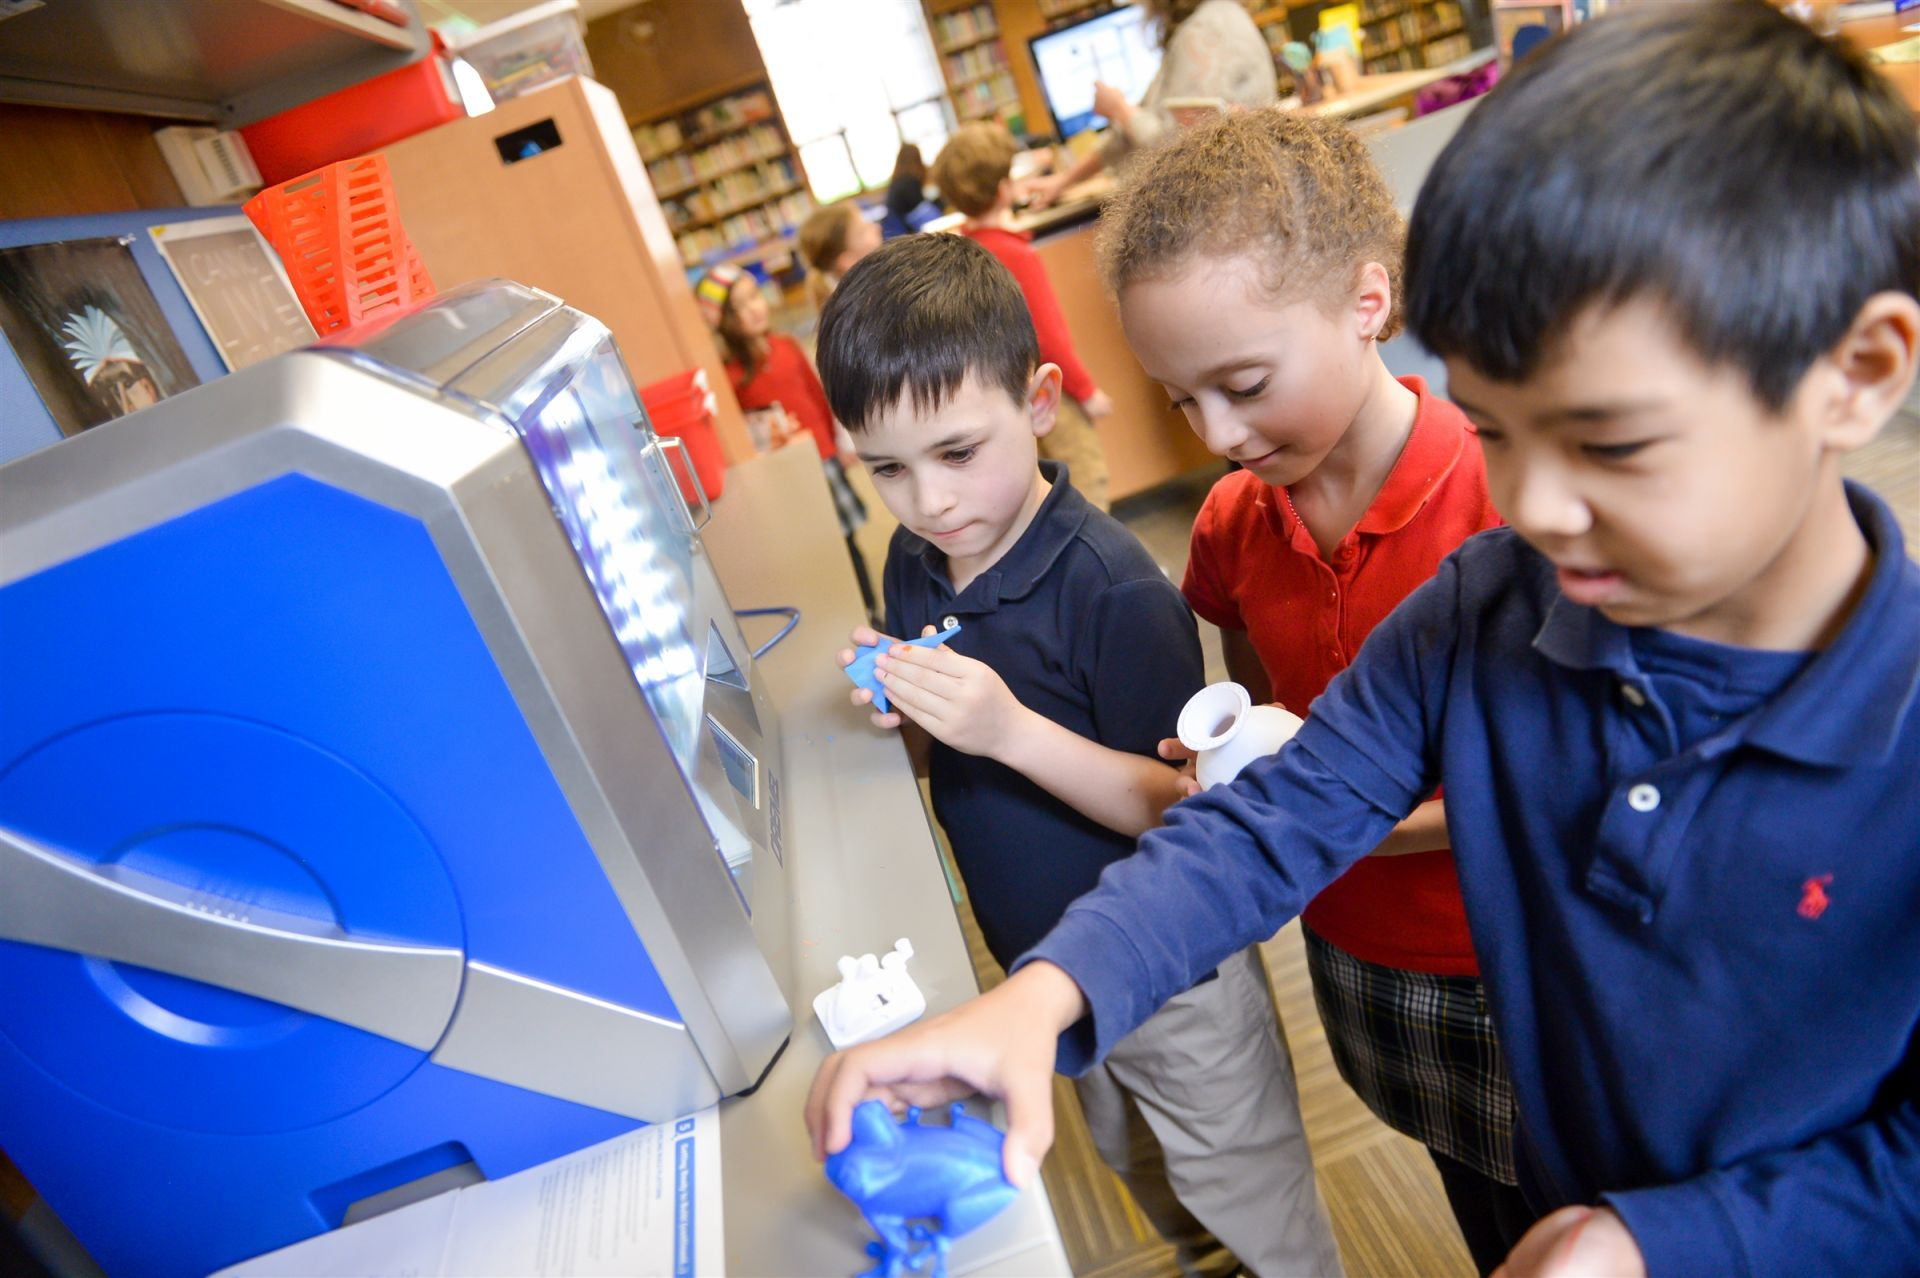 Private Elementary School Boys using a 3-D printer